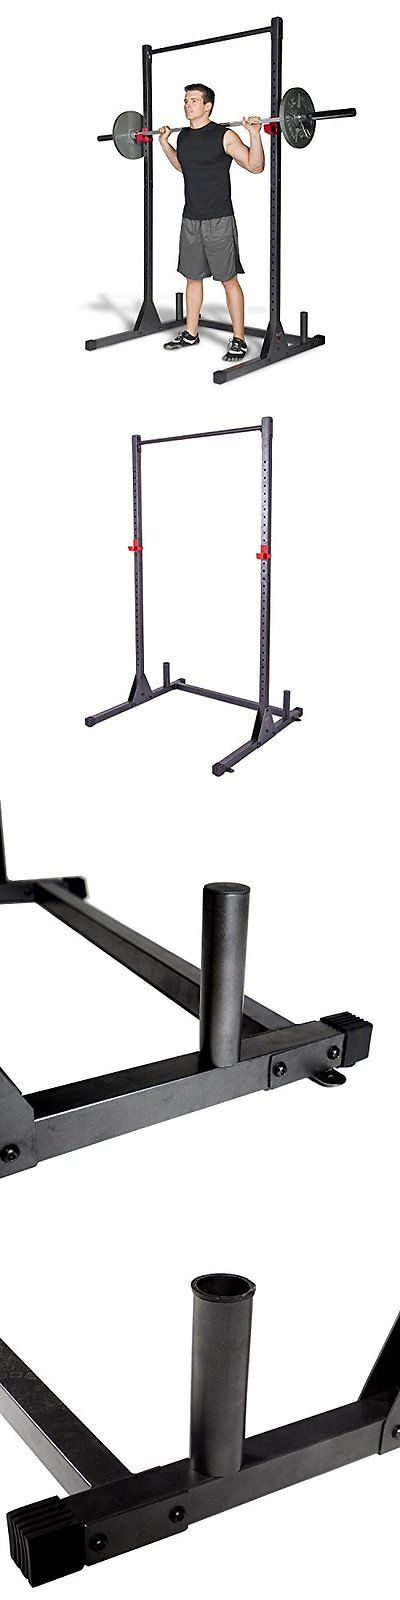 Power Racks and Smith Machines 179815: Cap Barbell Home Gym Exercise Equipment Station Pull Up Bar Power Tower Workout -> BUY IT NOW ONLY: $113.92 on eBay!